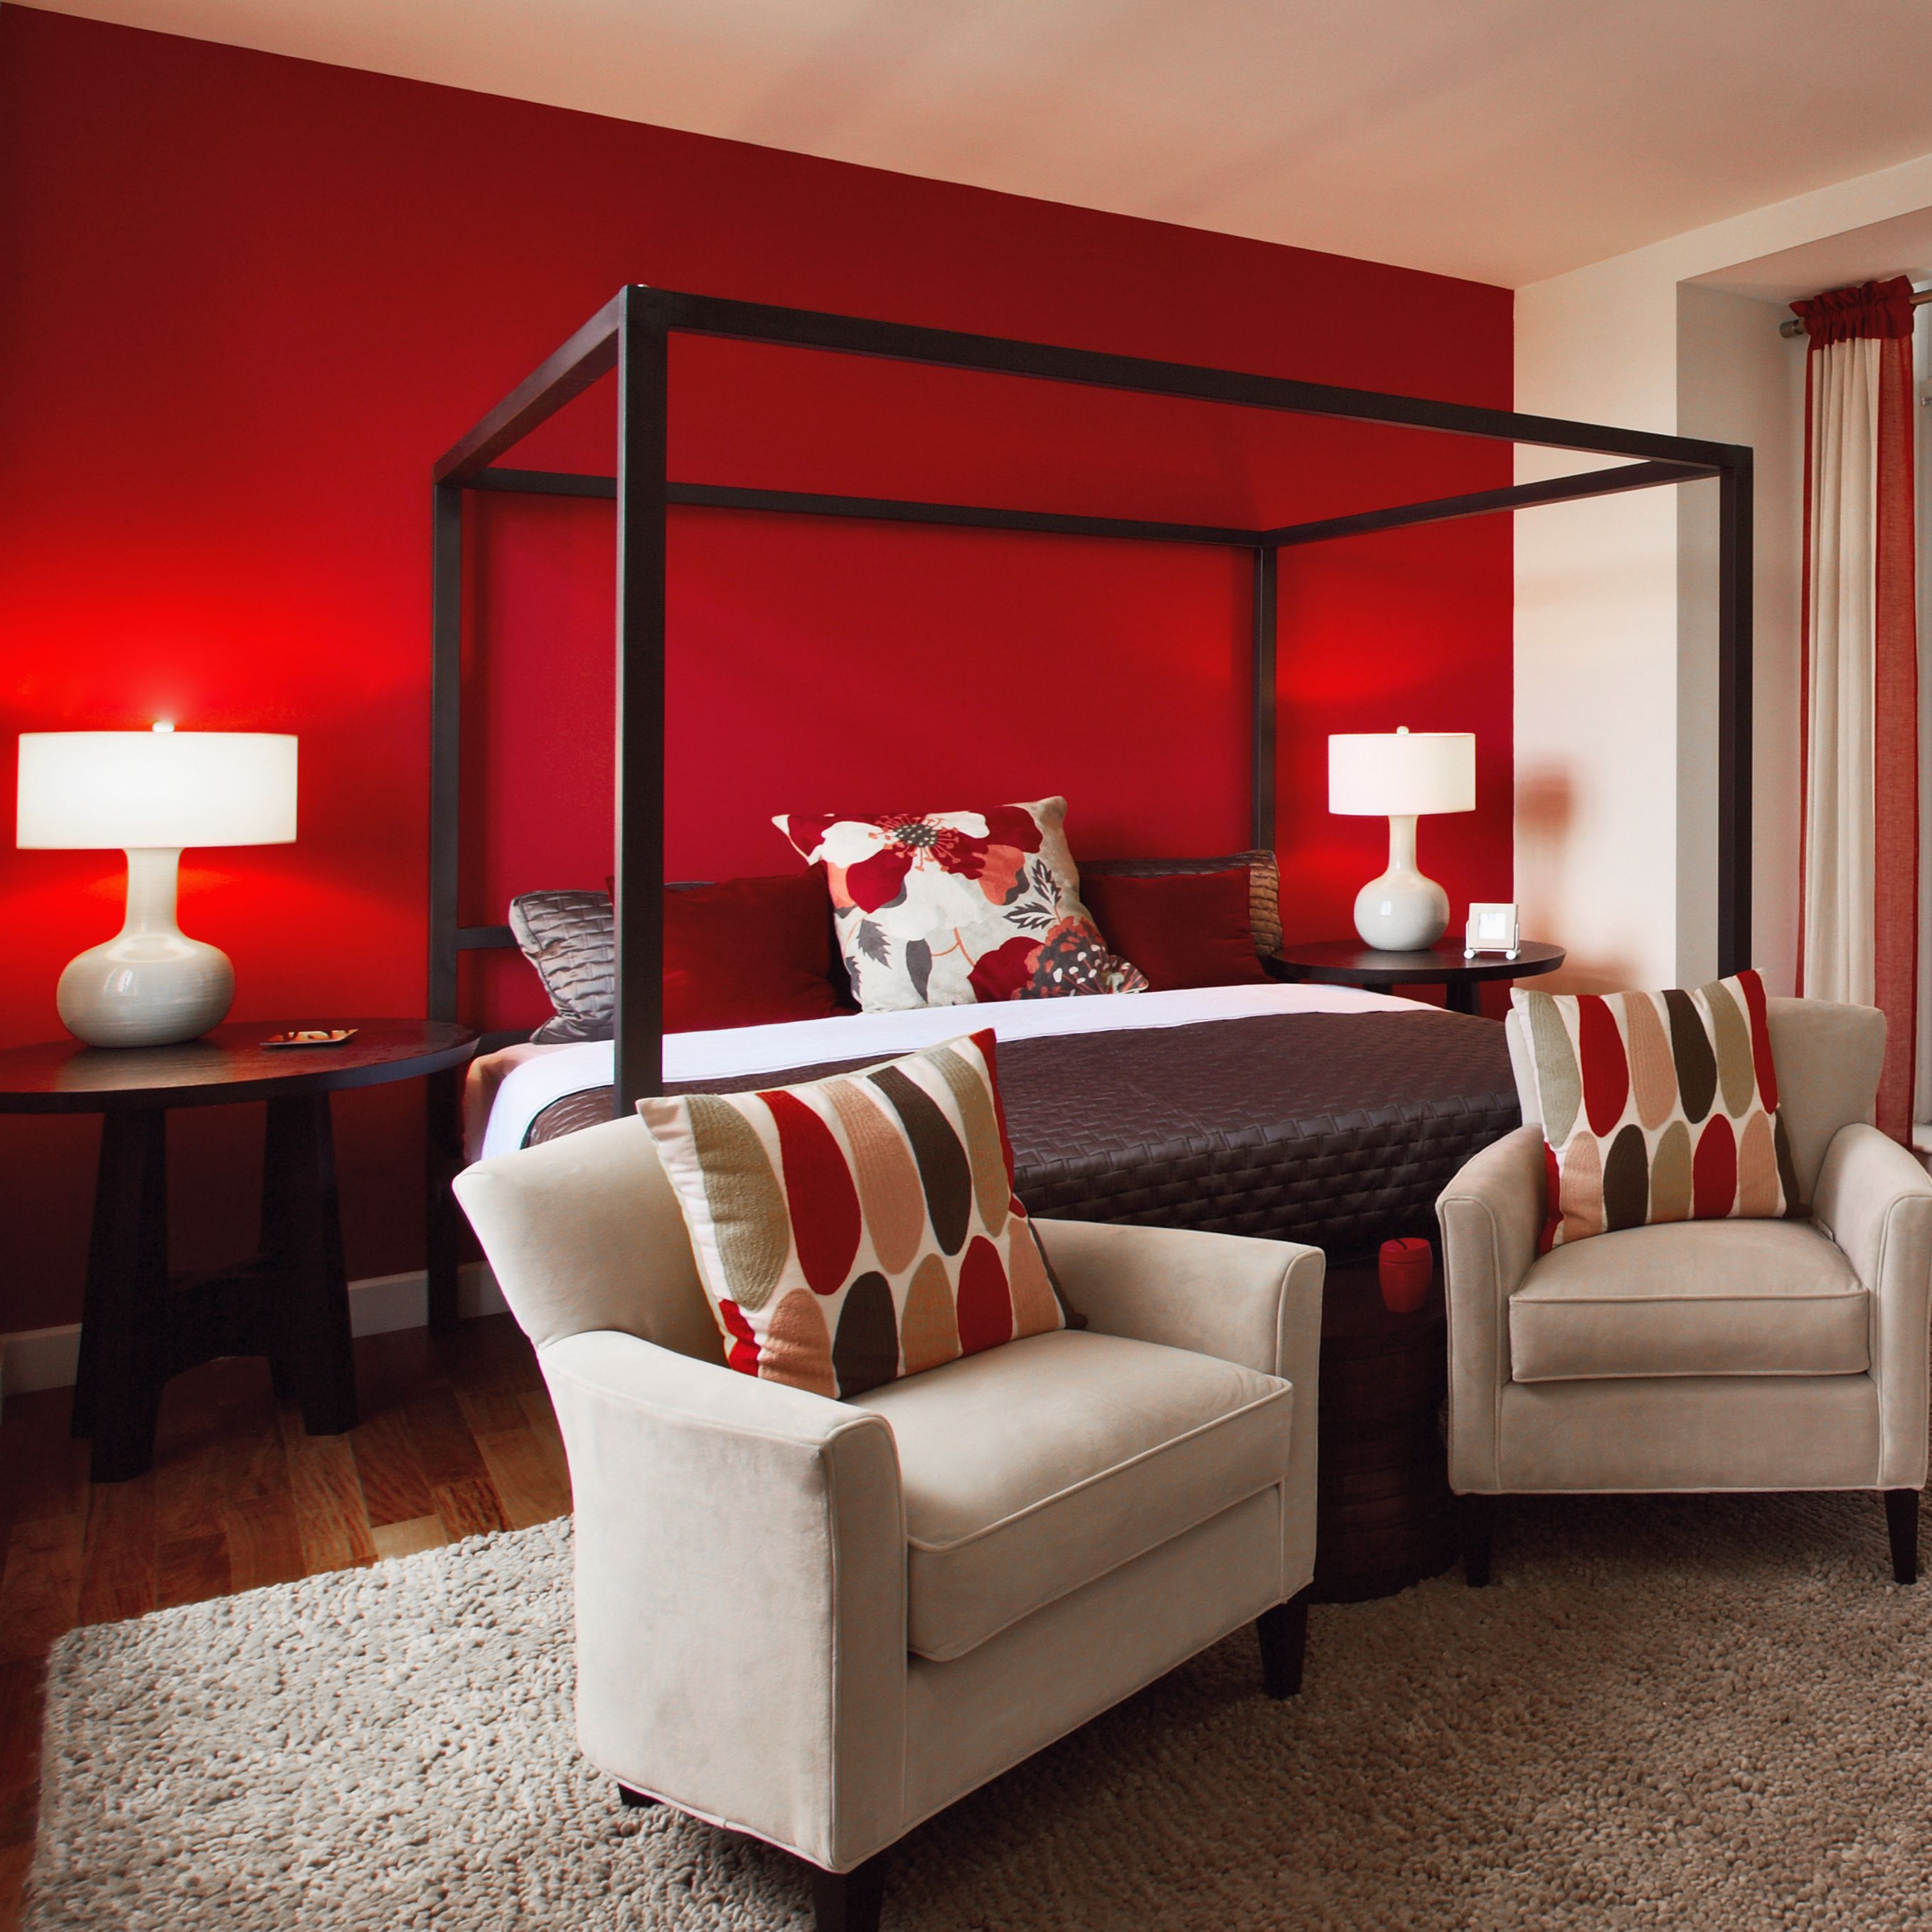 peinture mat lessivable rouge chambre tendance d co peinture mat lessivable pinterest. Black Bedroom Furniture Sets. Home Design Ideas